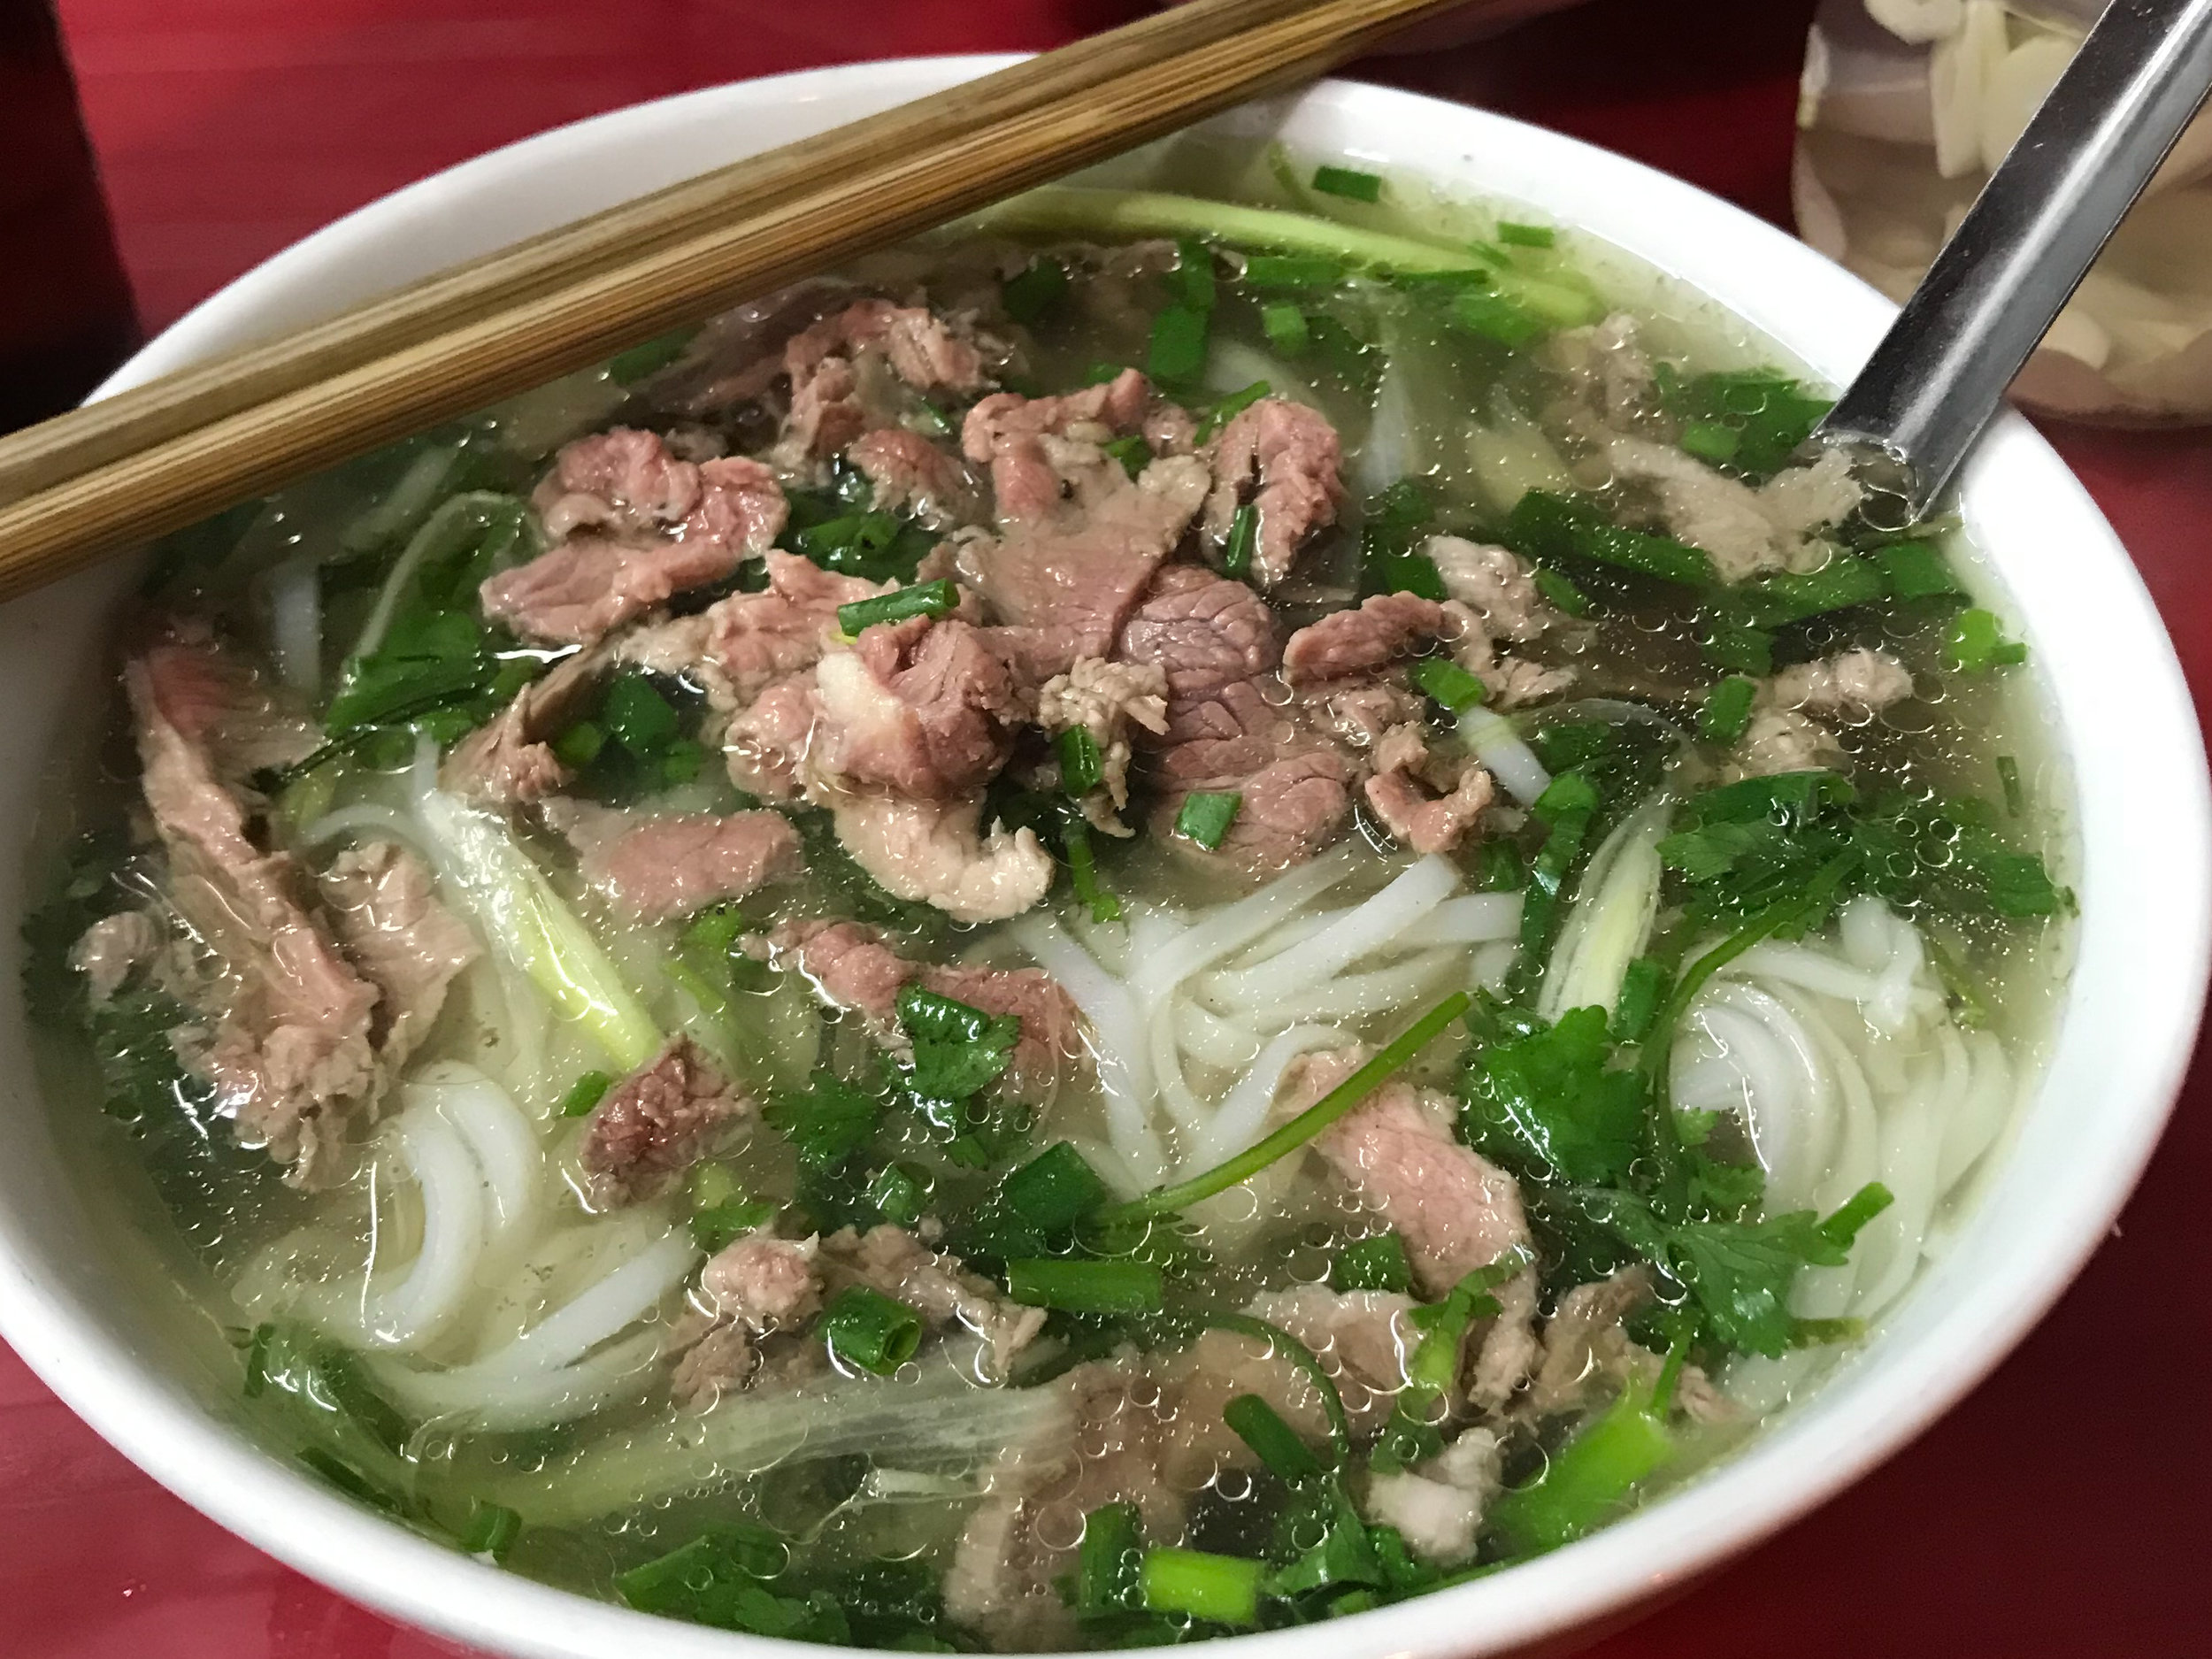 our 10 favorite meals in southeast asia - April 27th, 2018